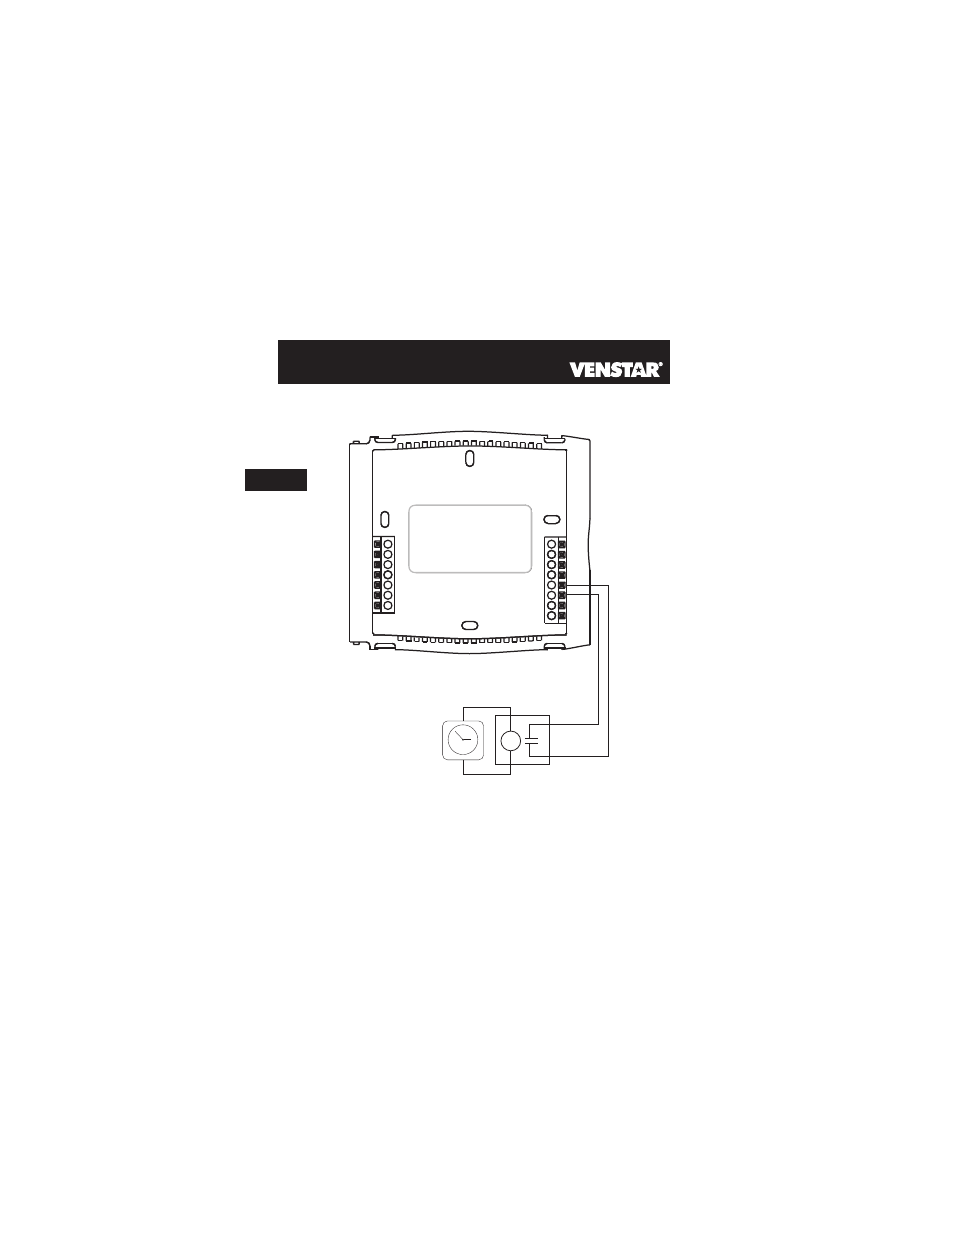 Page 58 5 Venstar T2700 Installation User Manual 19 23 Thermostat Wiring Diagram Background Image